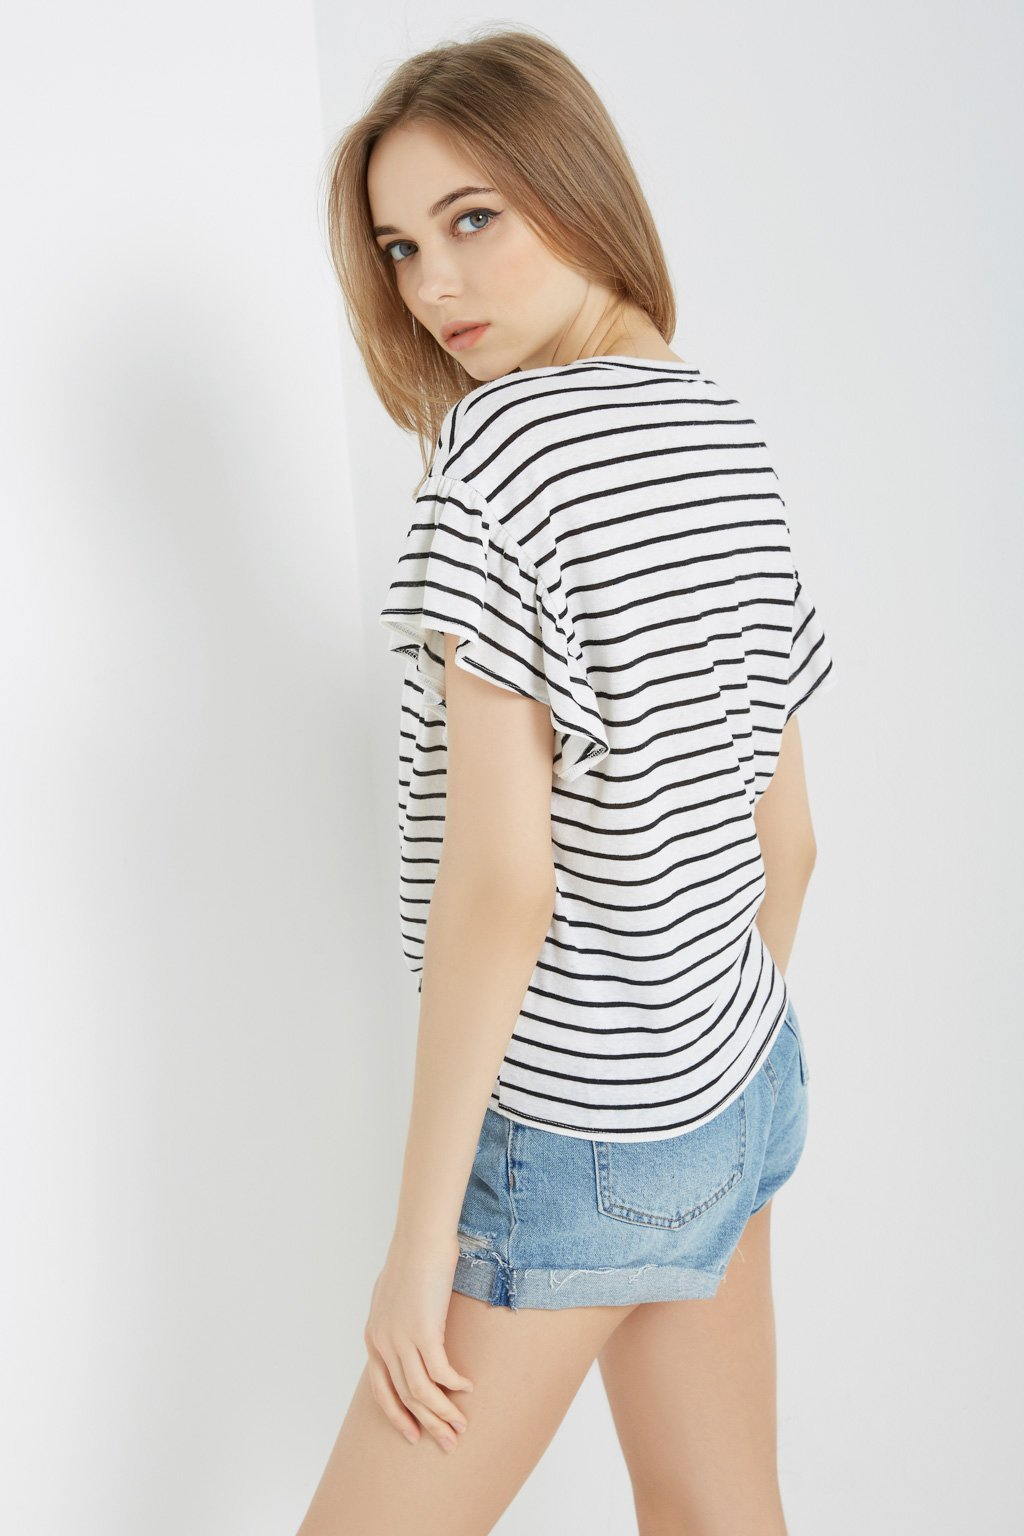 Poshsquare Tops S / White Striped Tie-Front Tee